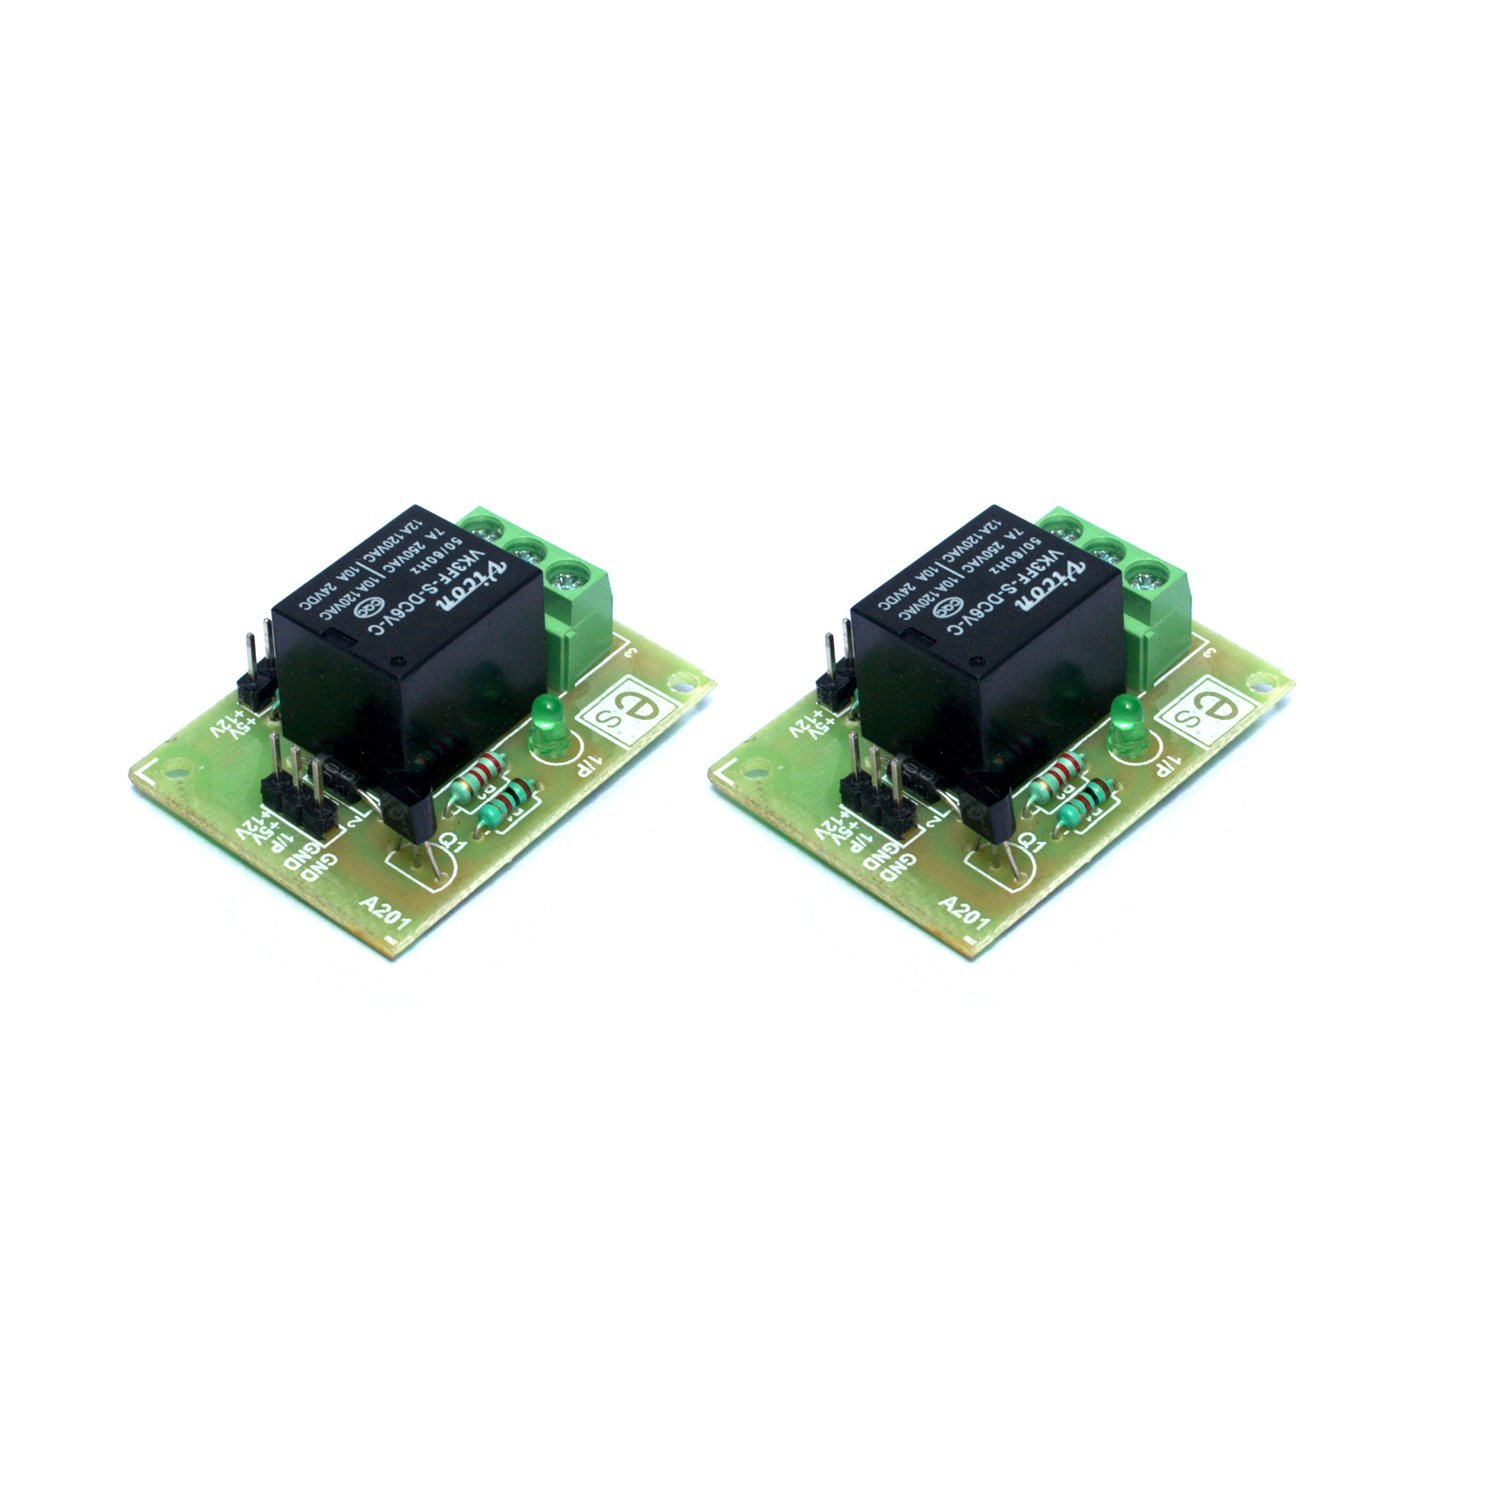 Electrobot 5v Single Channel Relay Module For Arduino Interfacing With 8051 Microcontroller Circuit Arduinoavrpicarm78051raspberry Pi Indicator Light Computers Accessories